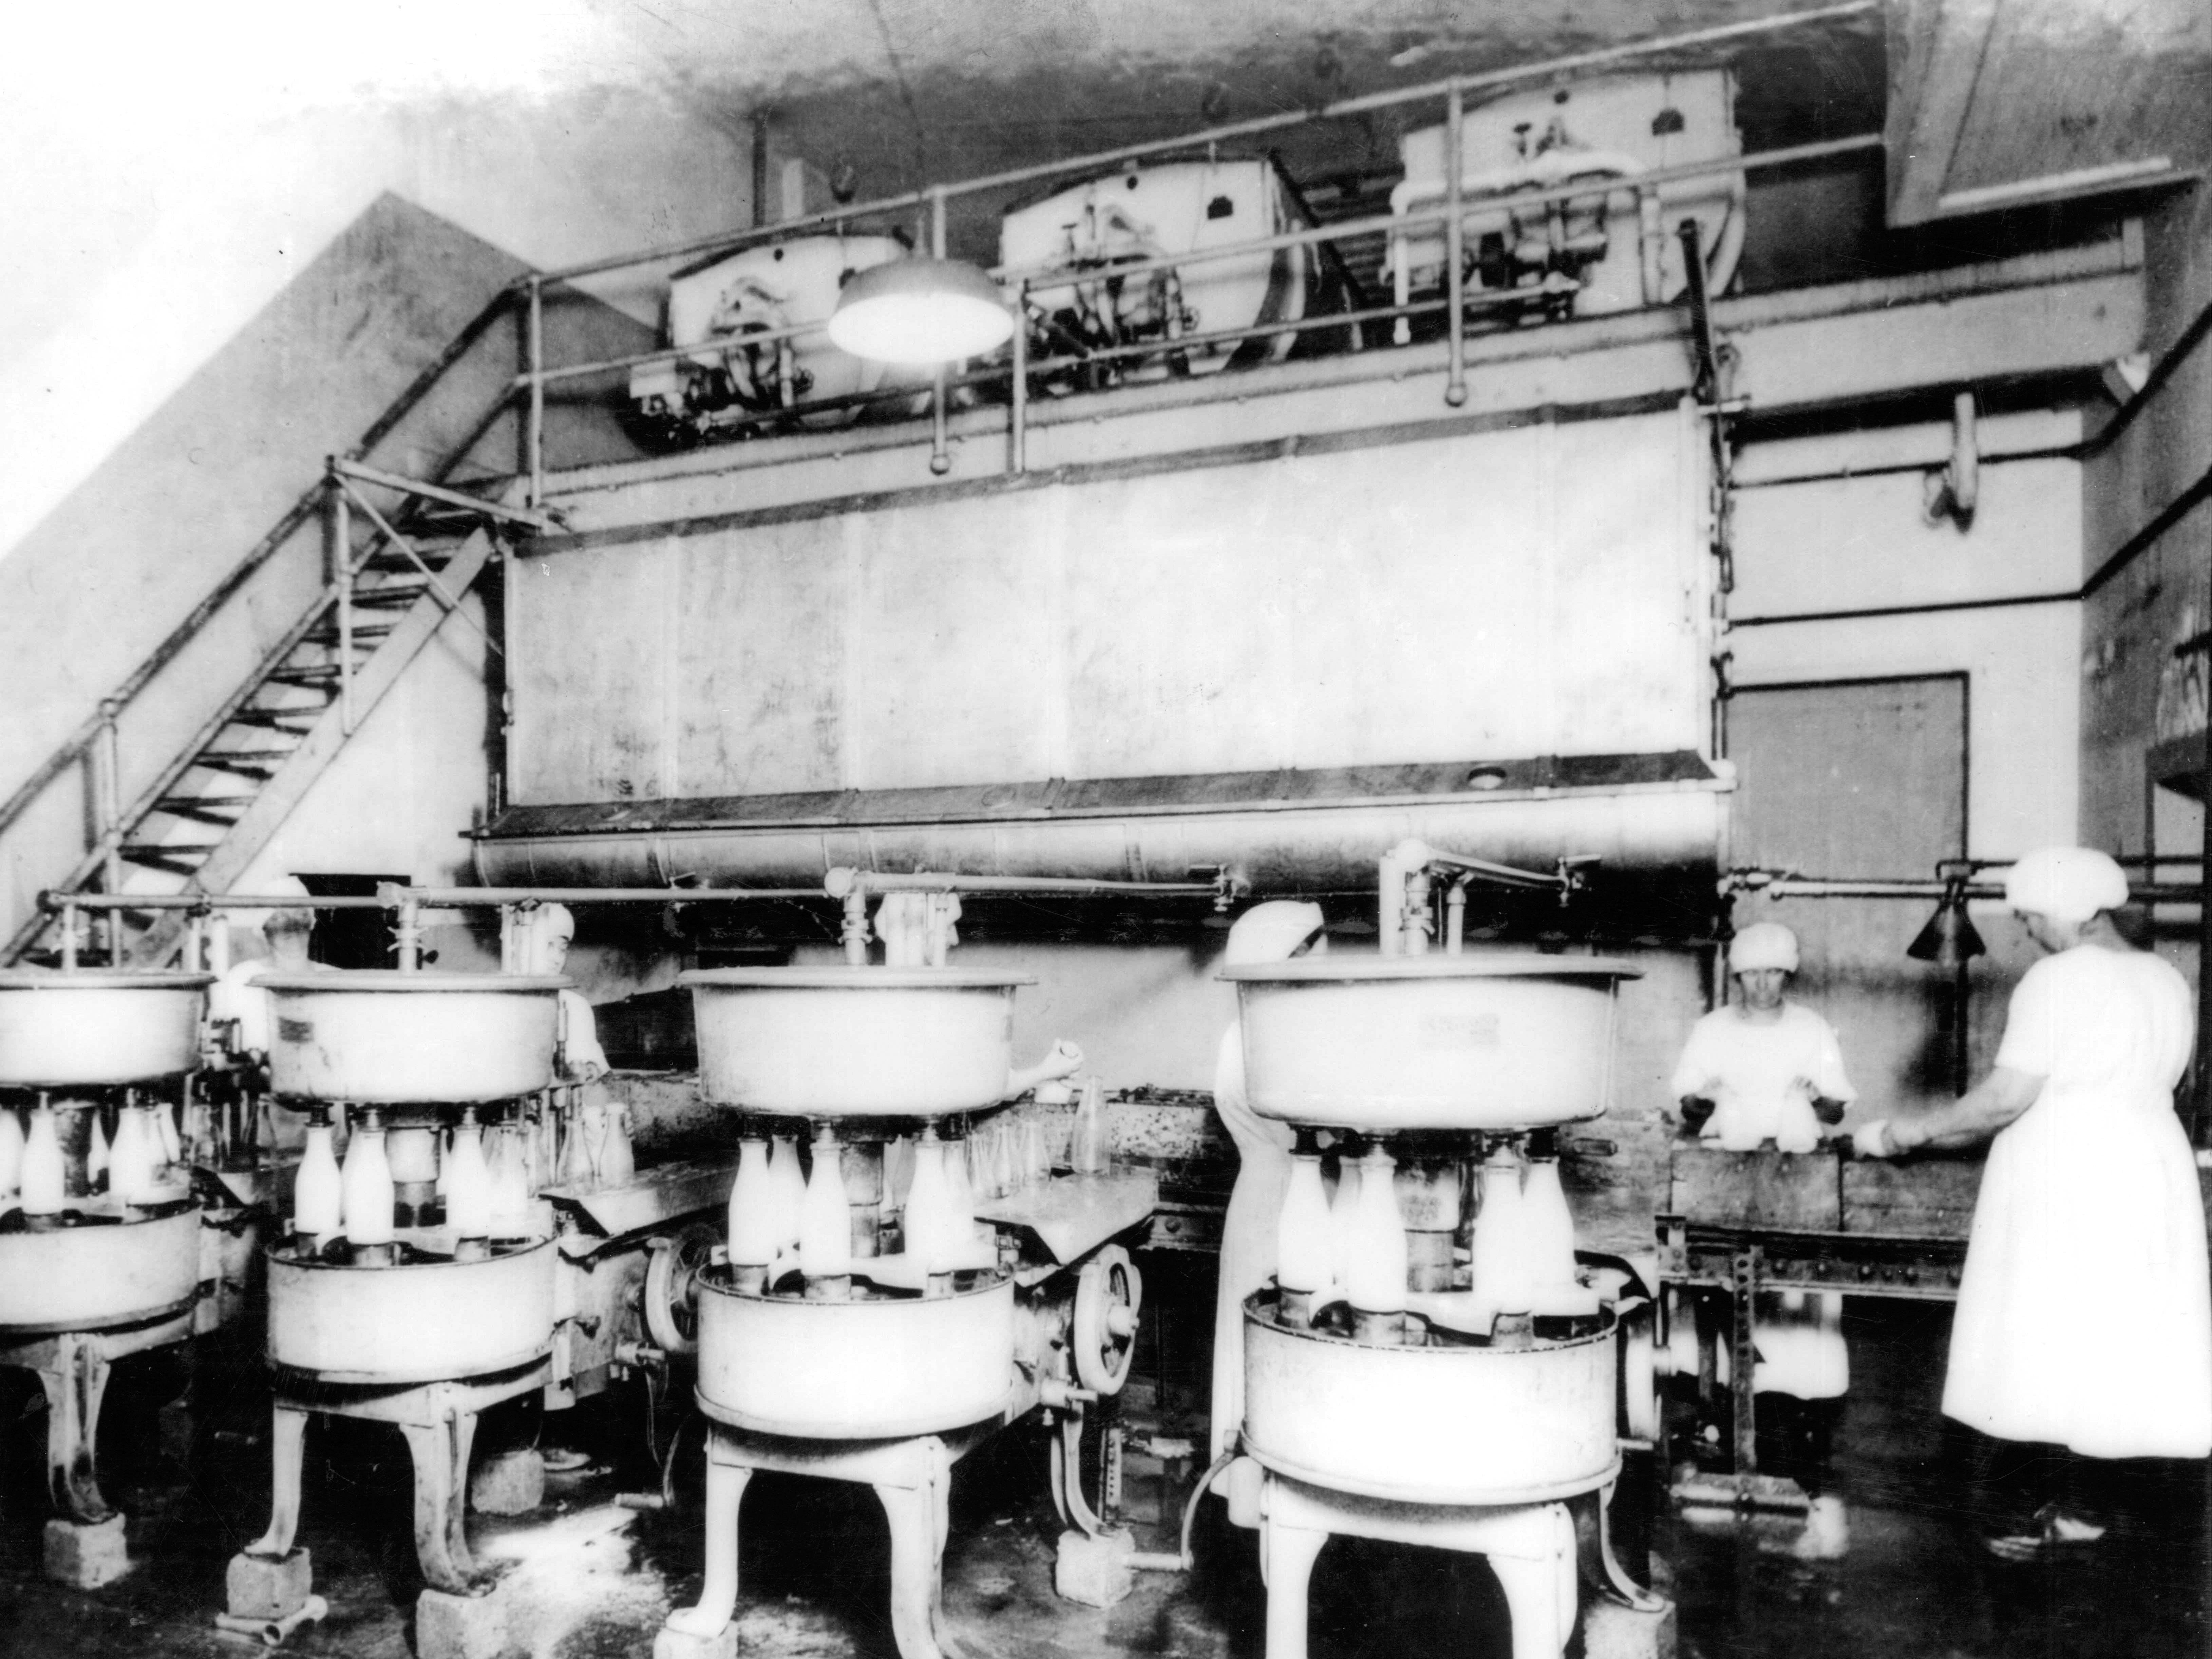 In 1884, the first glass milk bottles were patented. Two years later, the automatic bottle filler and capper joined the production lines. Two female employees of the Waukesha Milk Co. are shown working alongside four bottling machines (circa 1915).